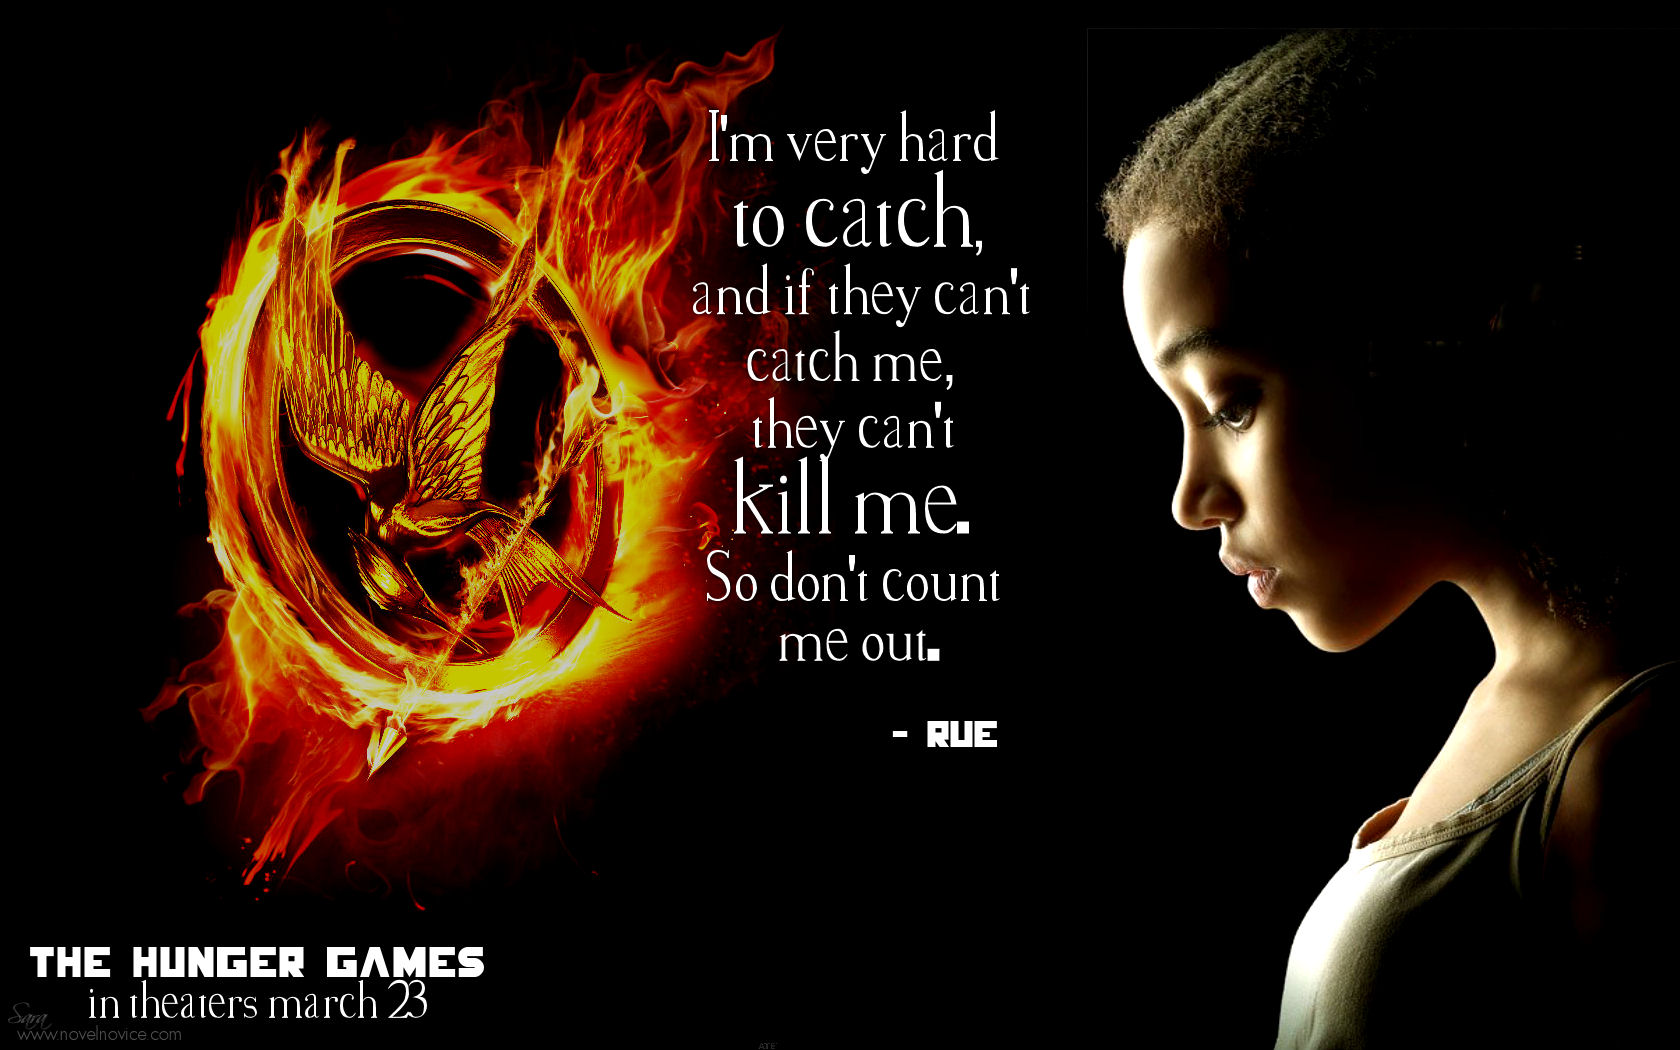 The Hunger Games Movie: Character Desktop Wallpapers